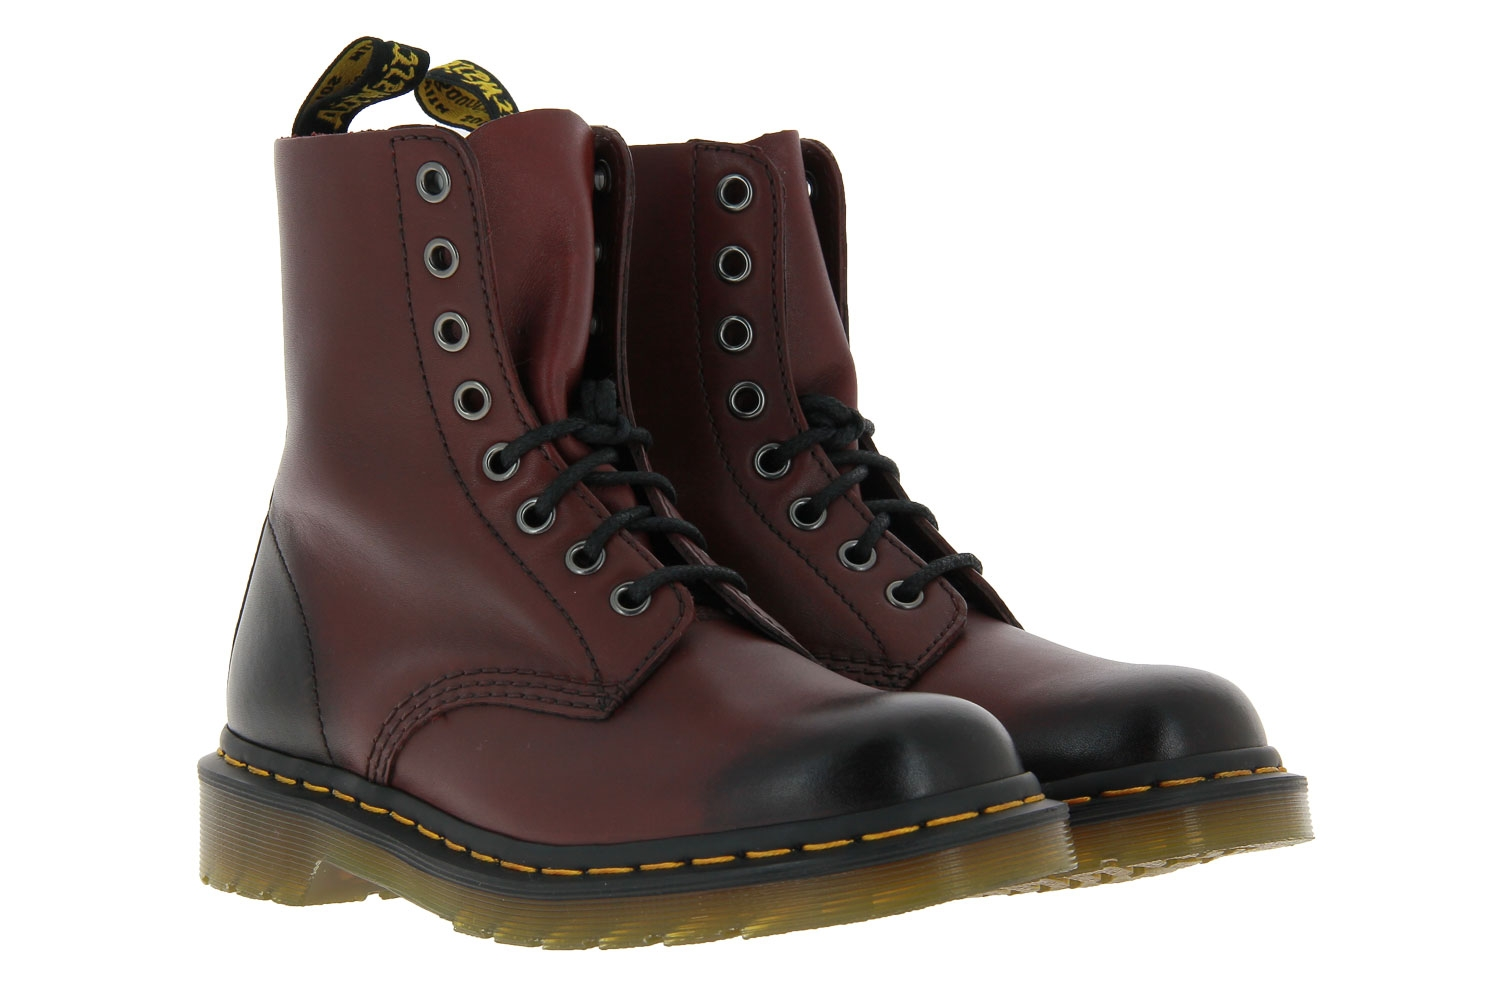 Dr. Martens boots PASCAL CHERRY RED ANTIQUE TEMPERLEY